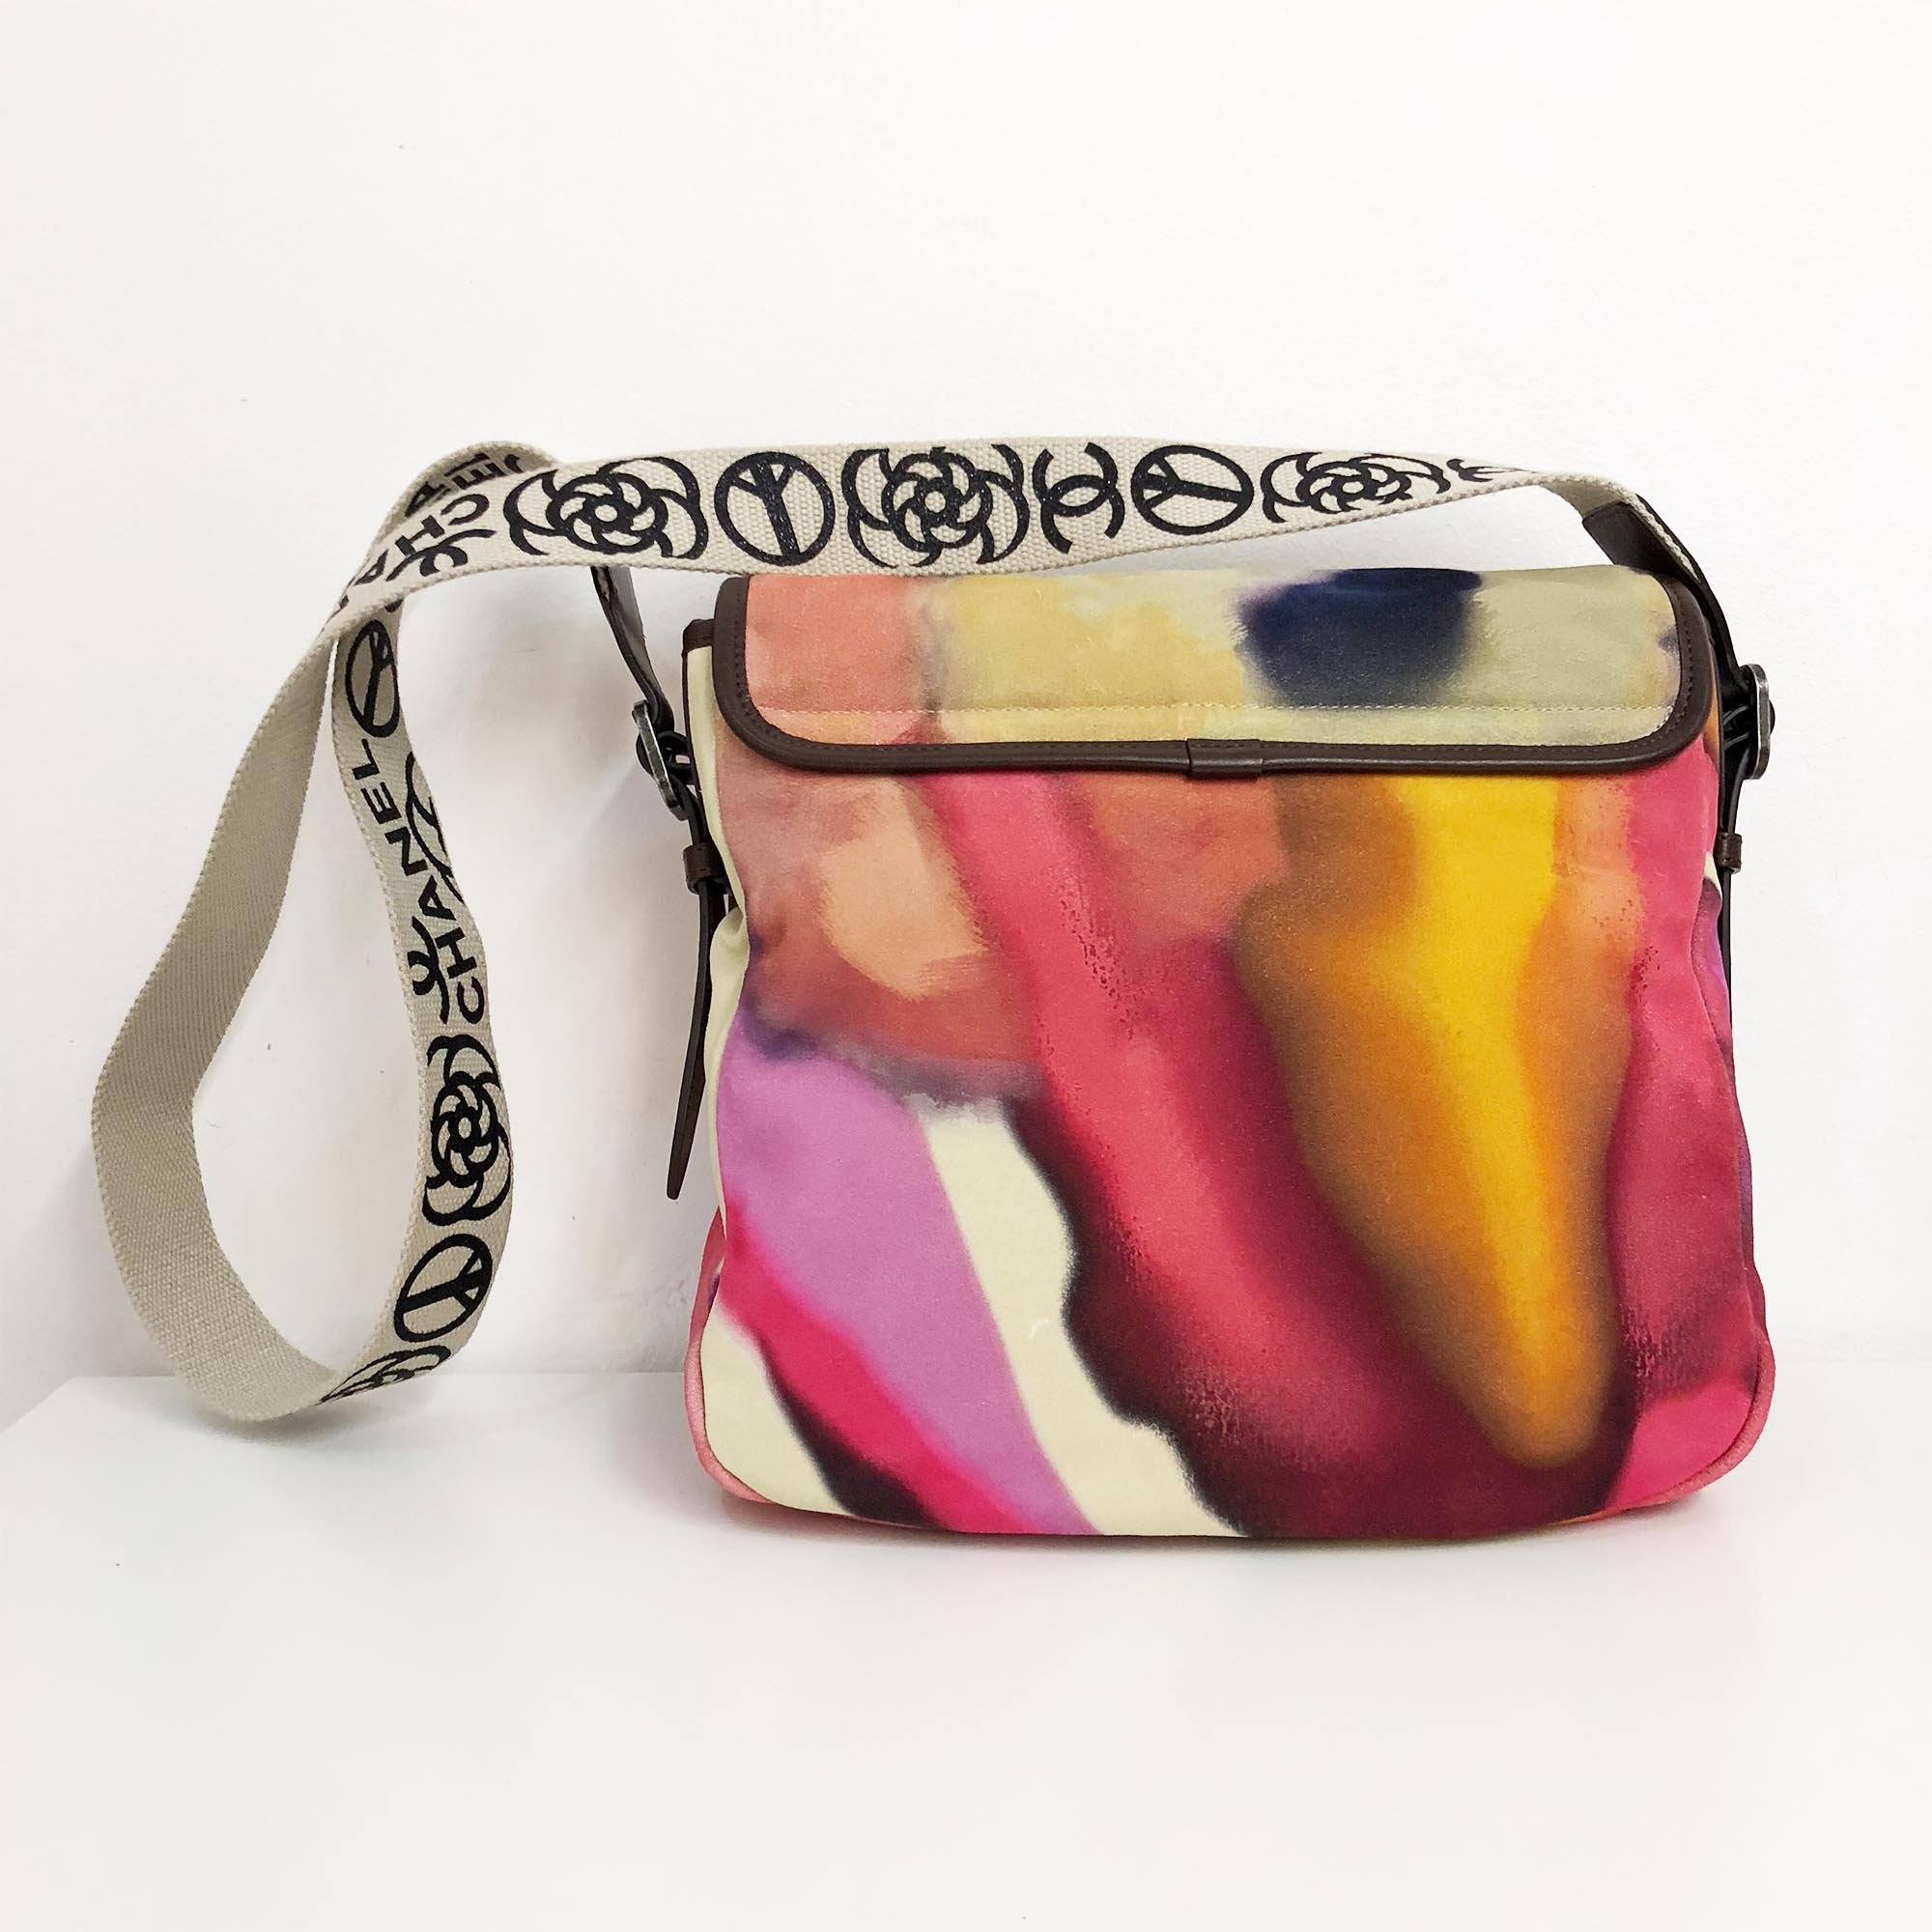 Chanel Multicolor Nubuck Leather CC Flower Power Messenger Bag